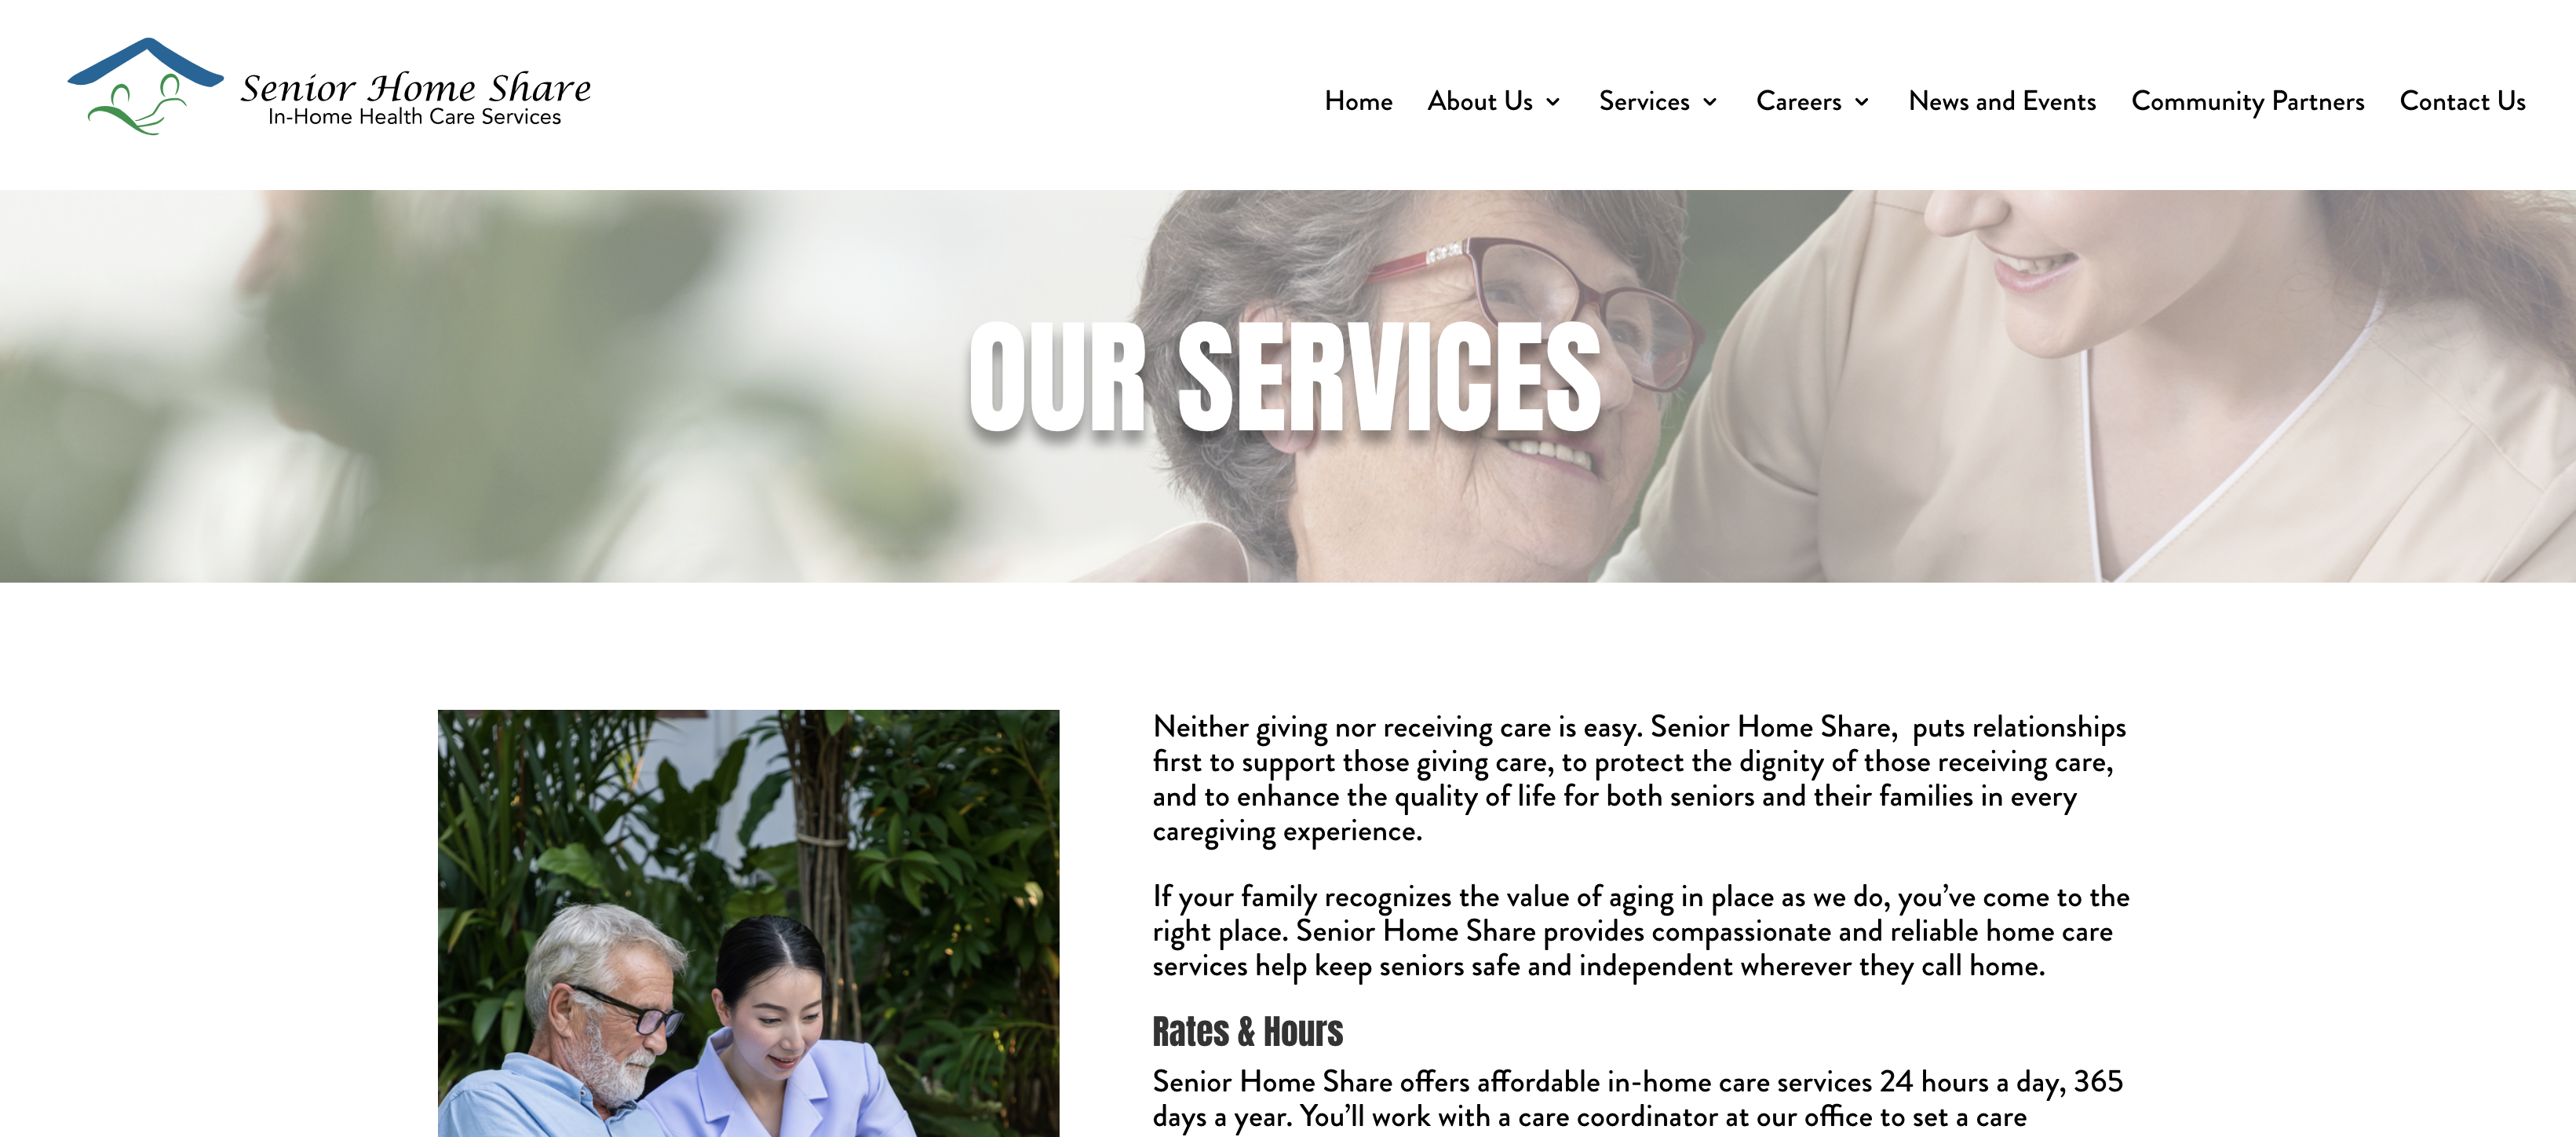 Our Services Website Page